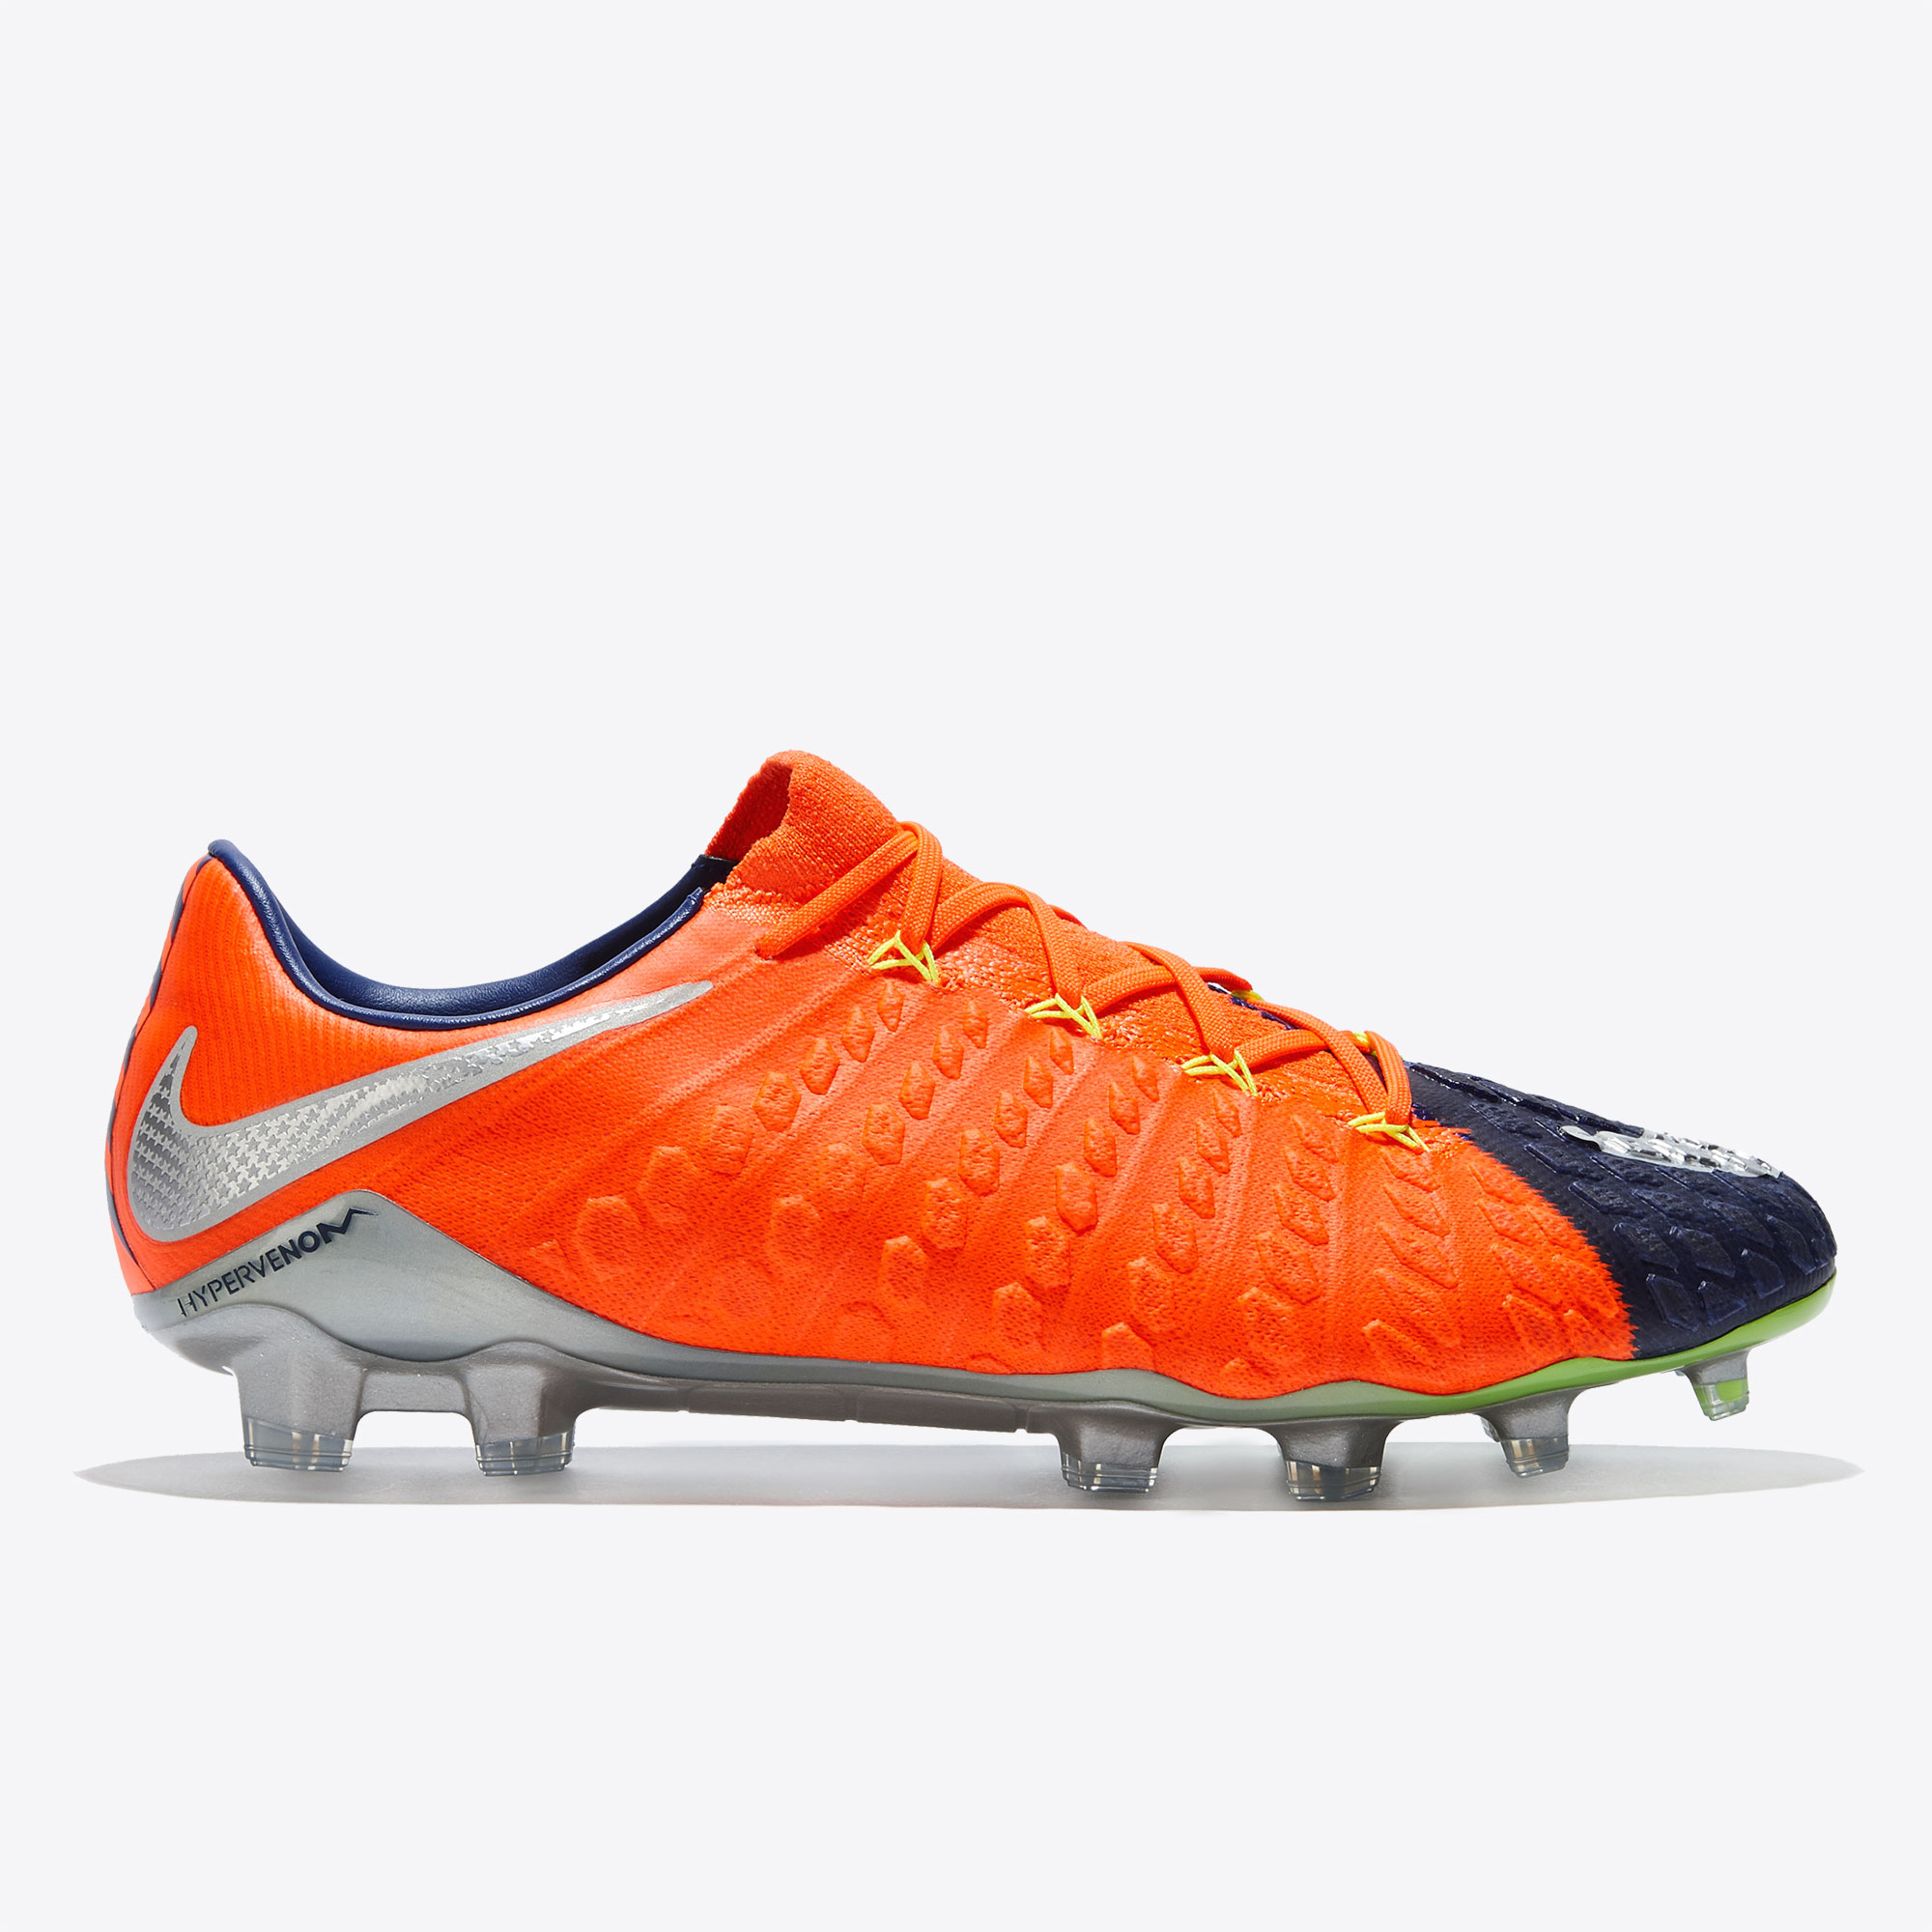 Nike Hypervenom Phantom III FG Deep Royal Bl